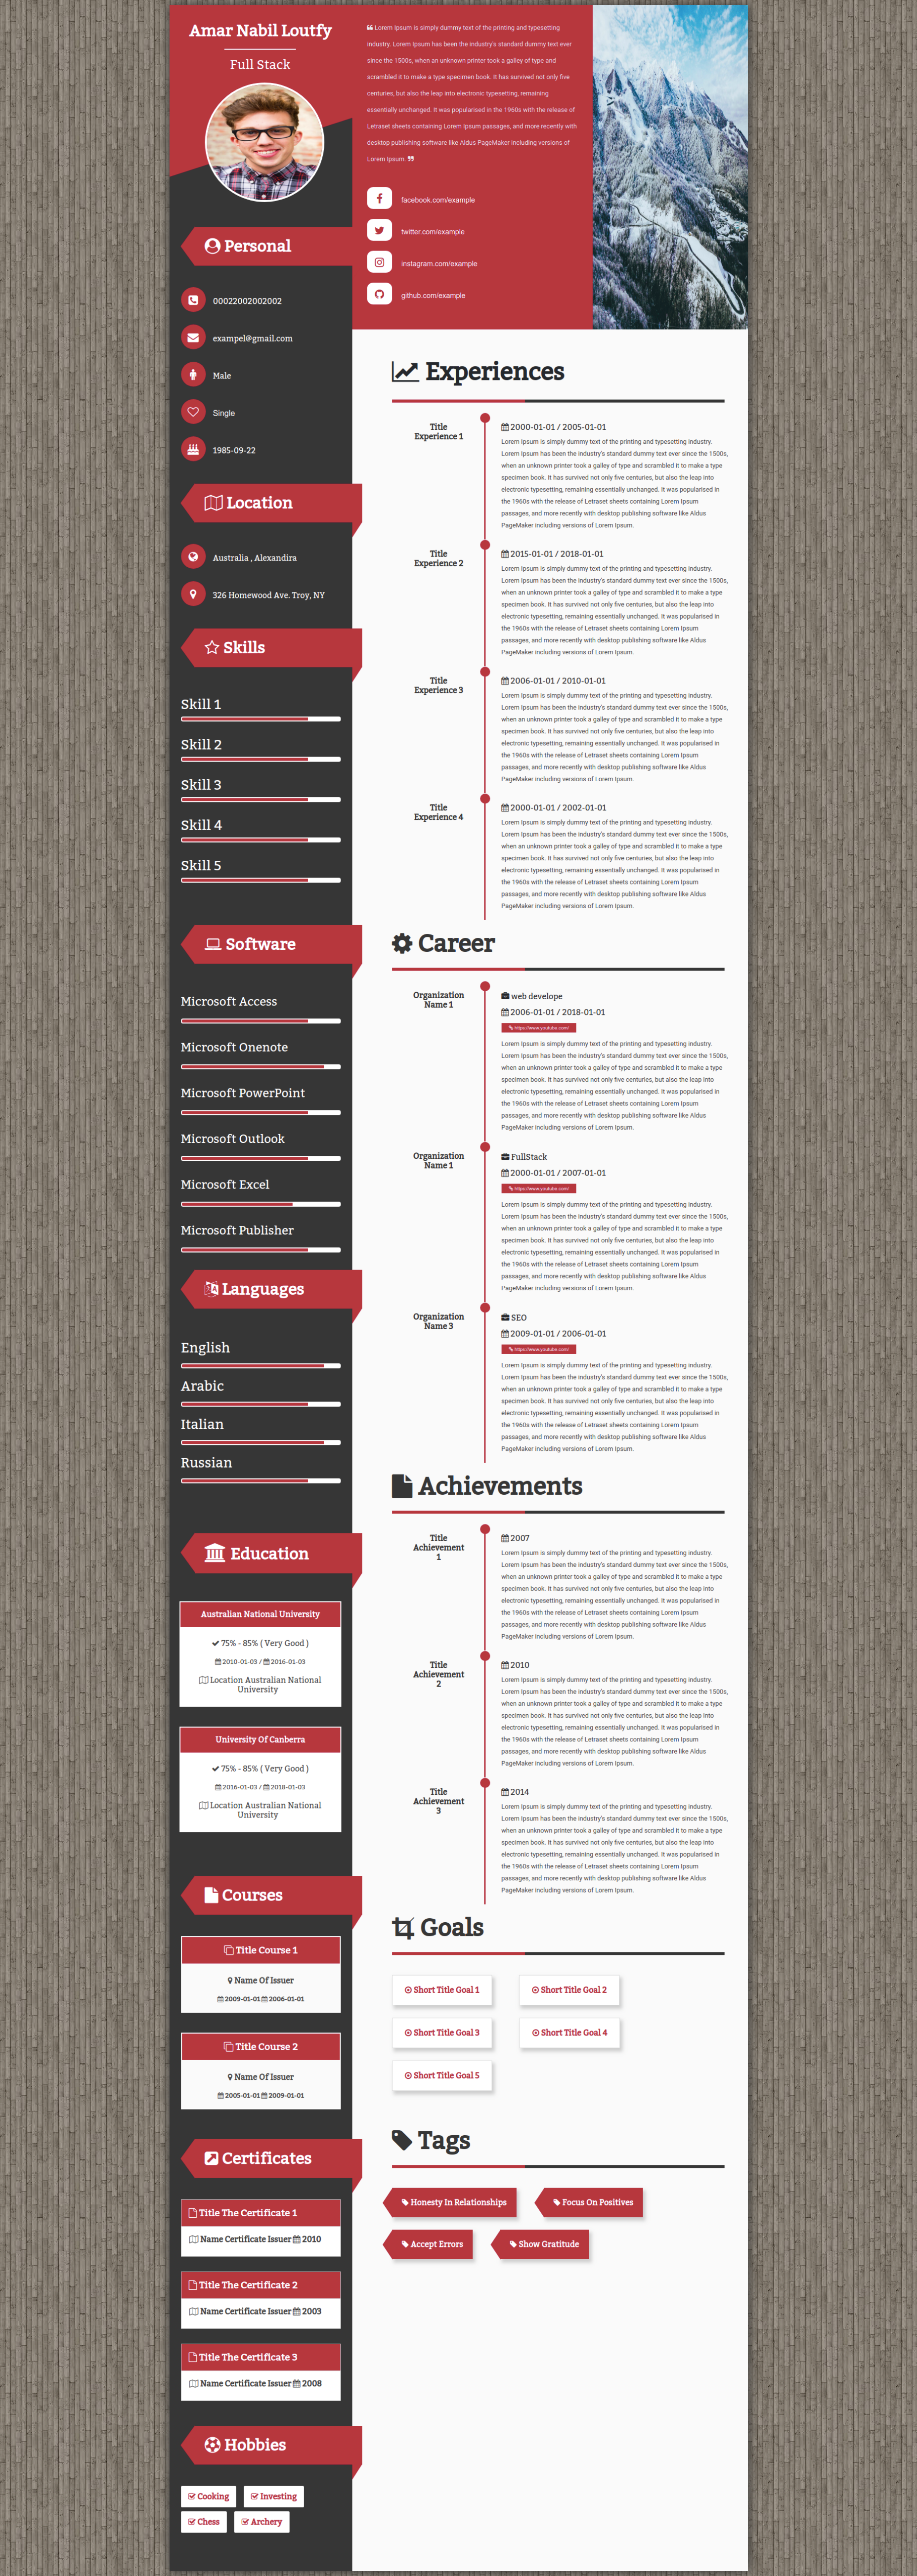 Site To Create A Cv Online Of More Than 35 Different Languages And